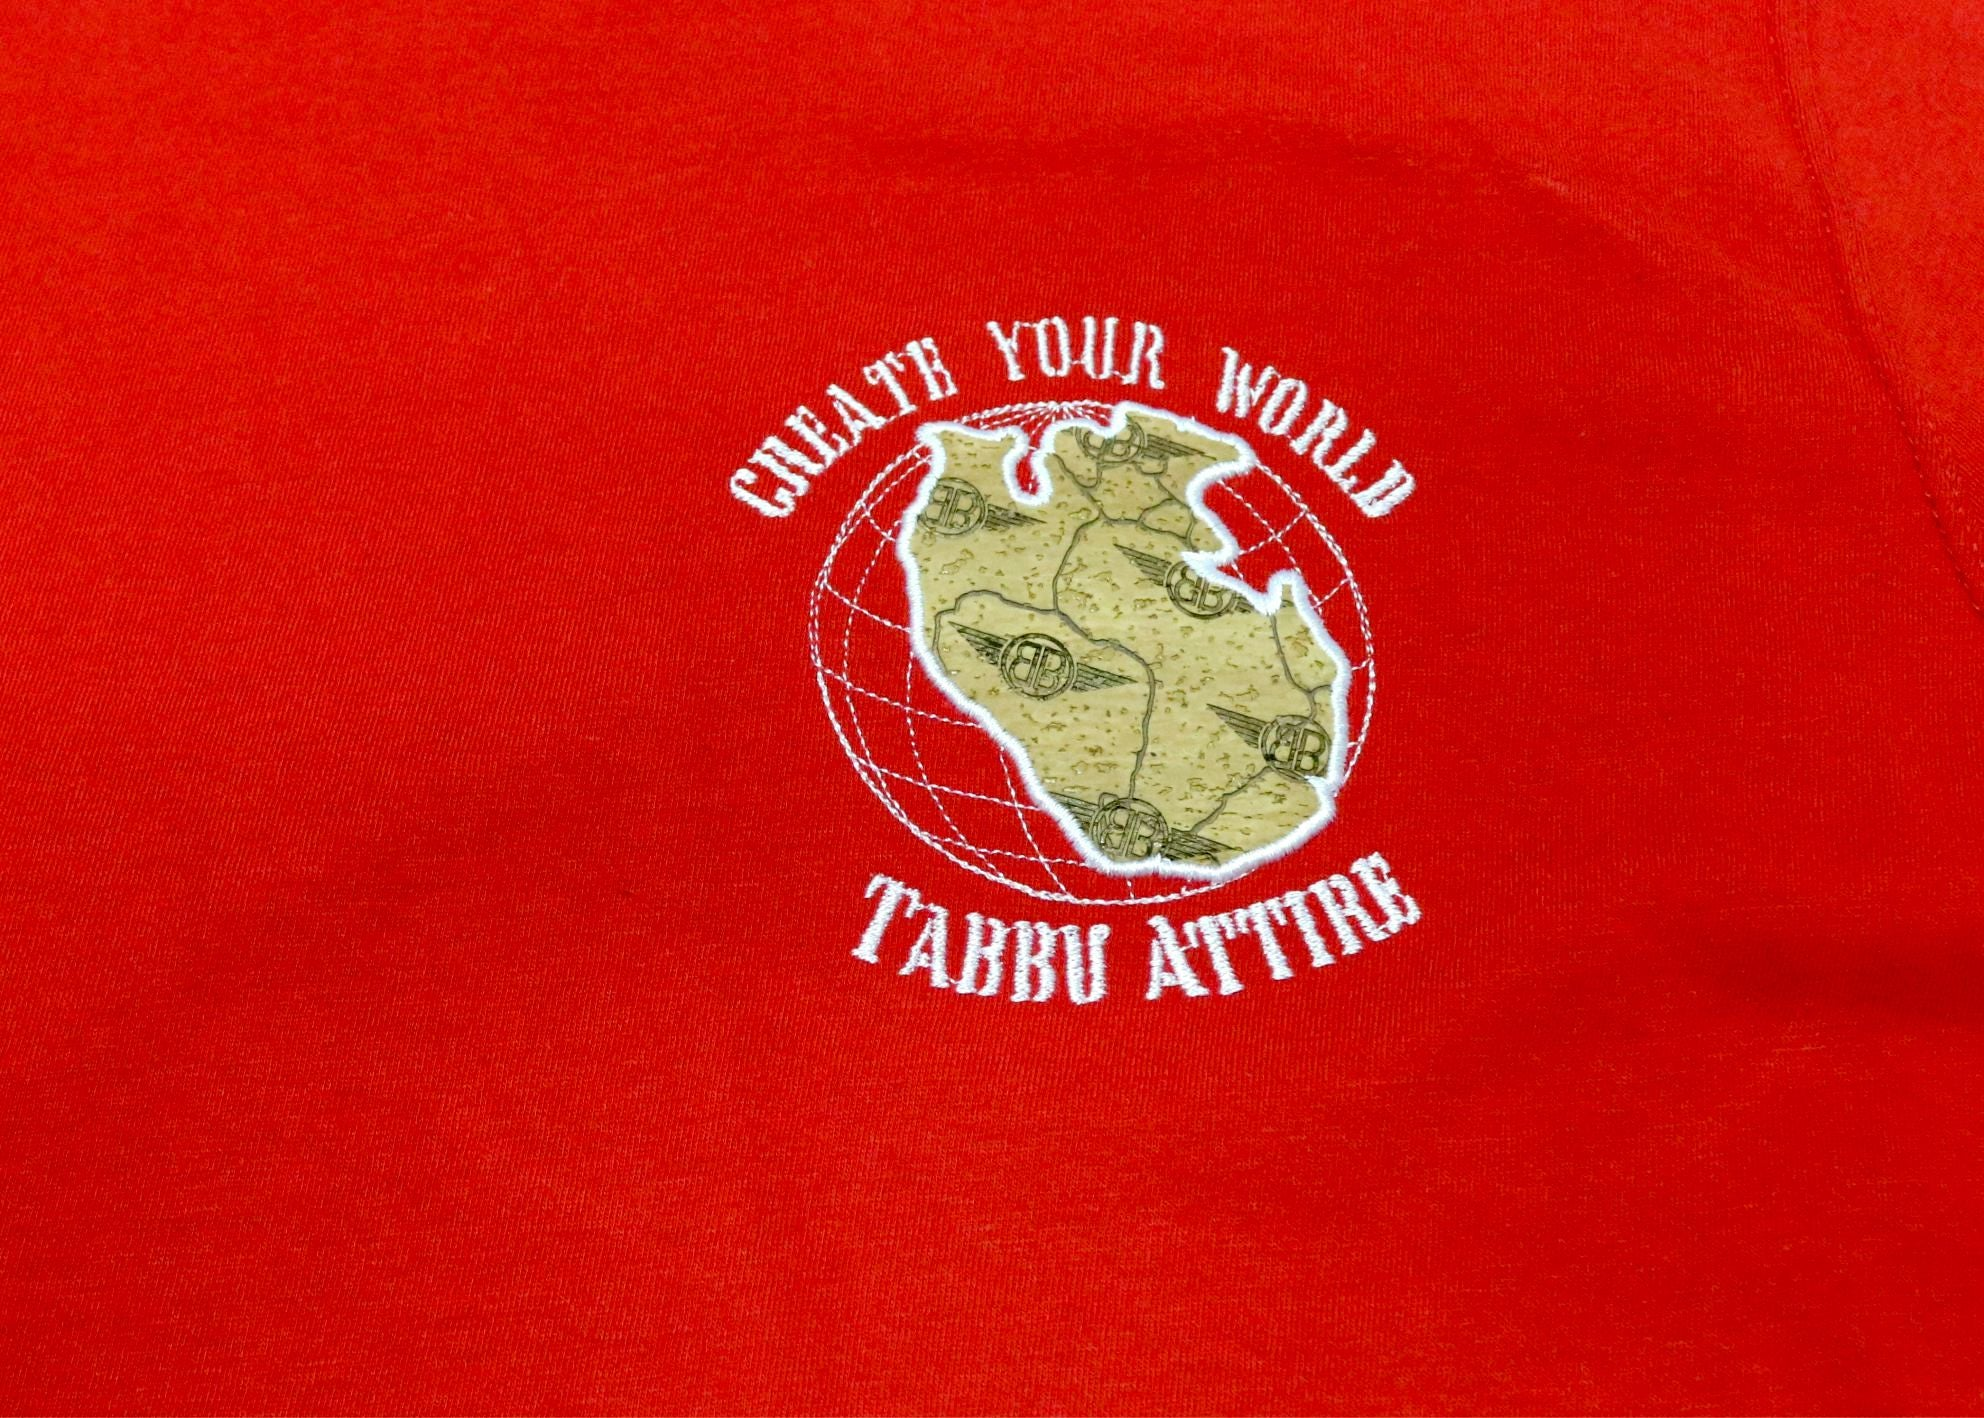 Create Your World Short Sleeve Tee- Red/White Embroidery